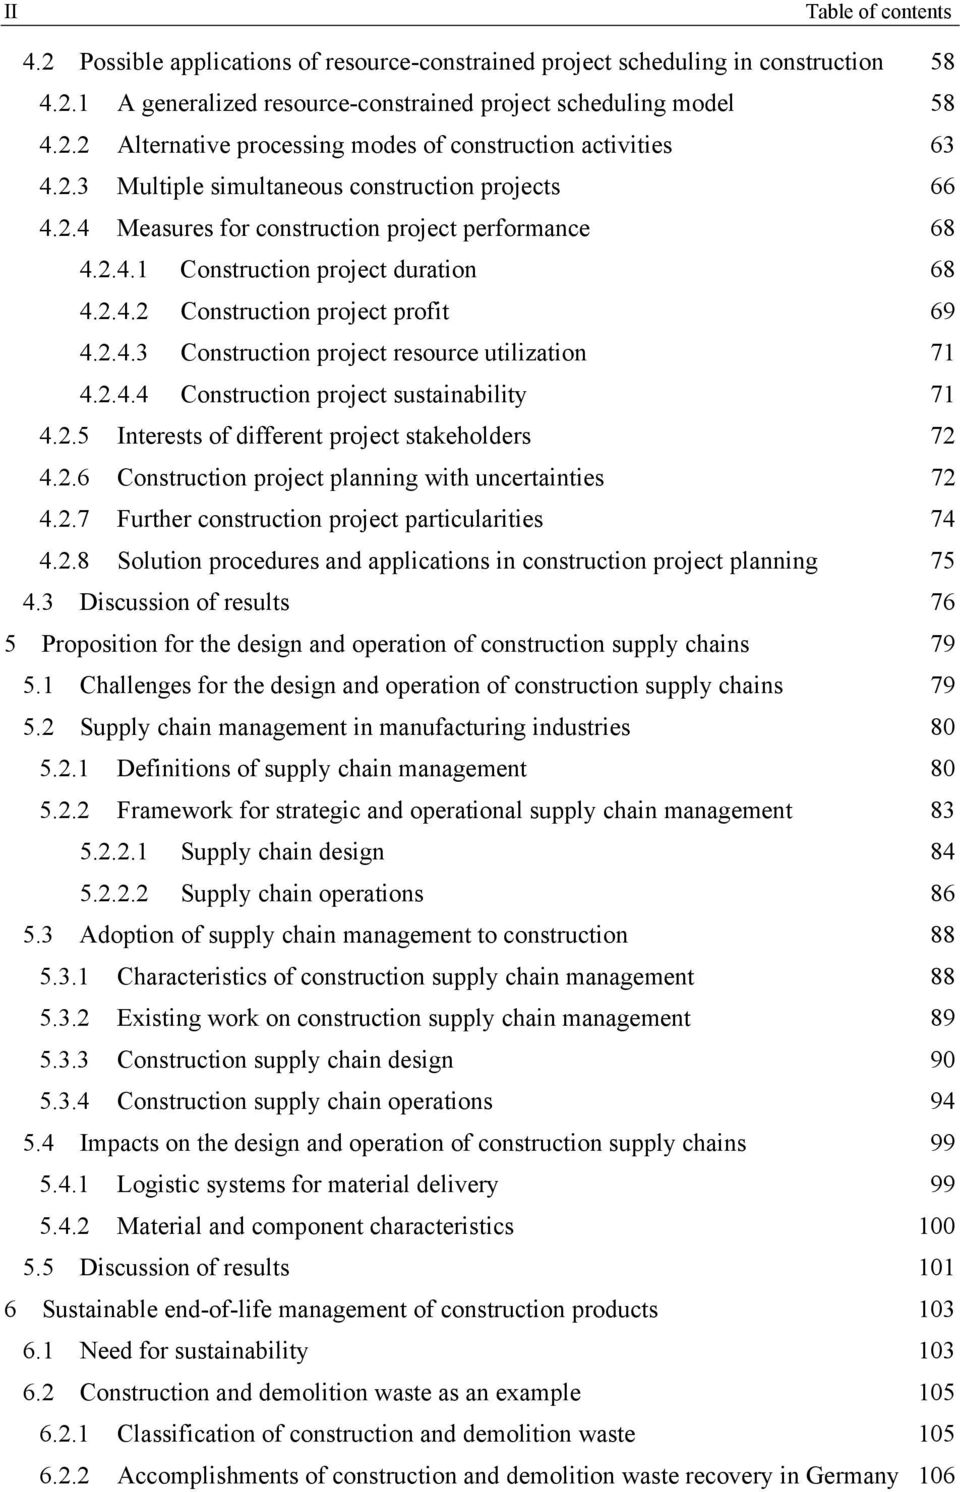 2.4.4 Construction project sustainability 71 4.2.5 Interests of different project stakeholders 72 4.2.6 Construction project planning with uncertainties 72 4.2.7 Further construction project particularities 74 4.